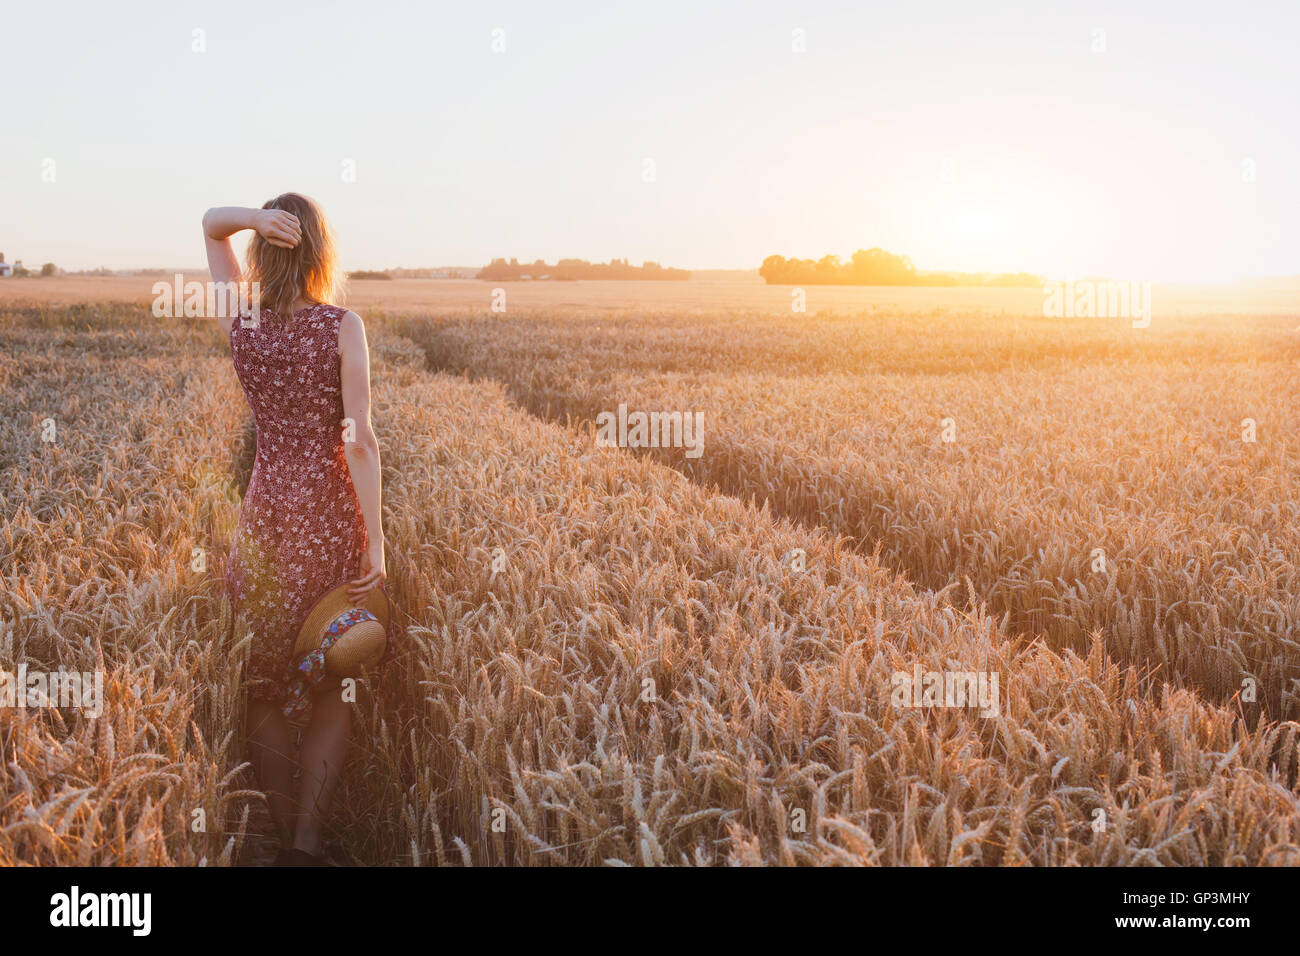 inspiration or waiting concept, happy beautiful young woman in sunset field, dream - Stock Image